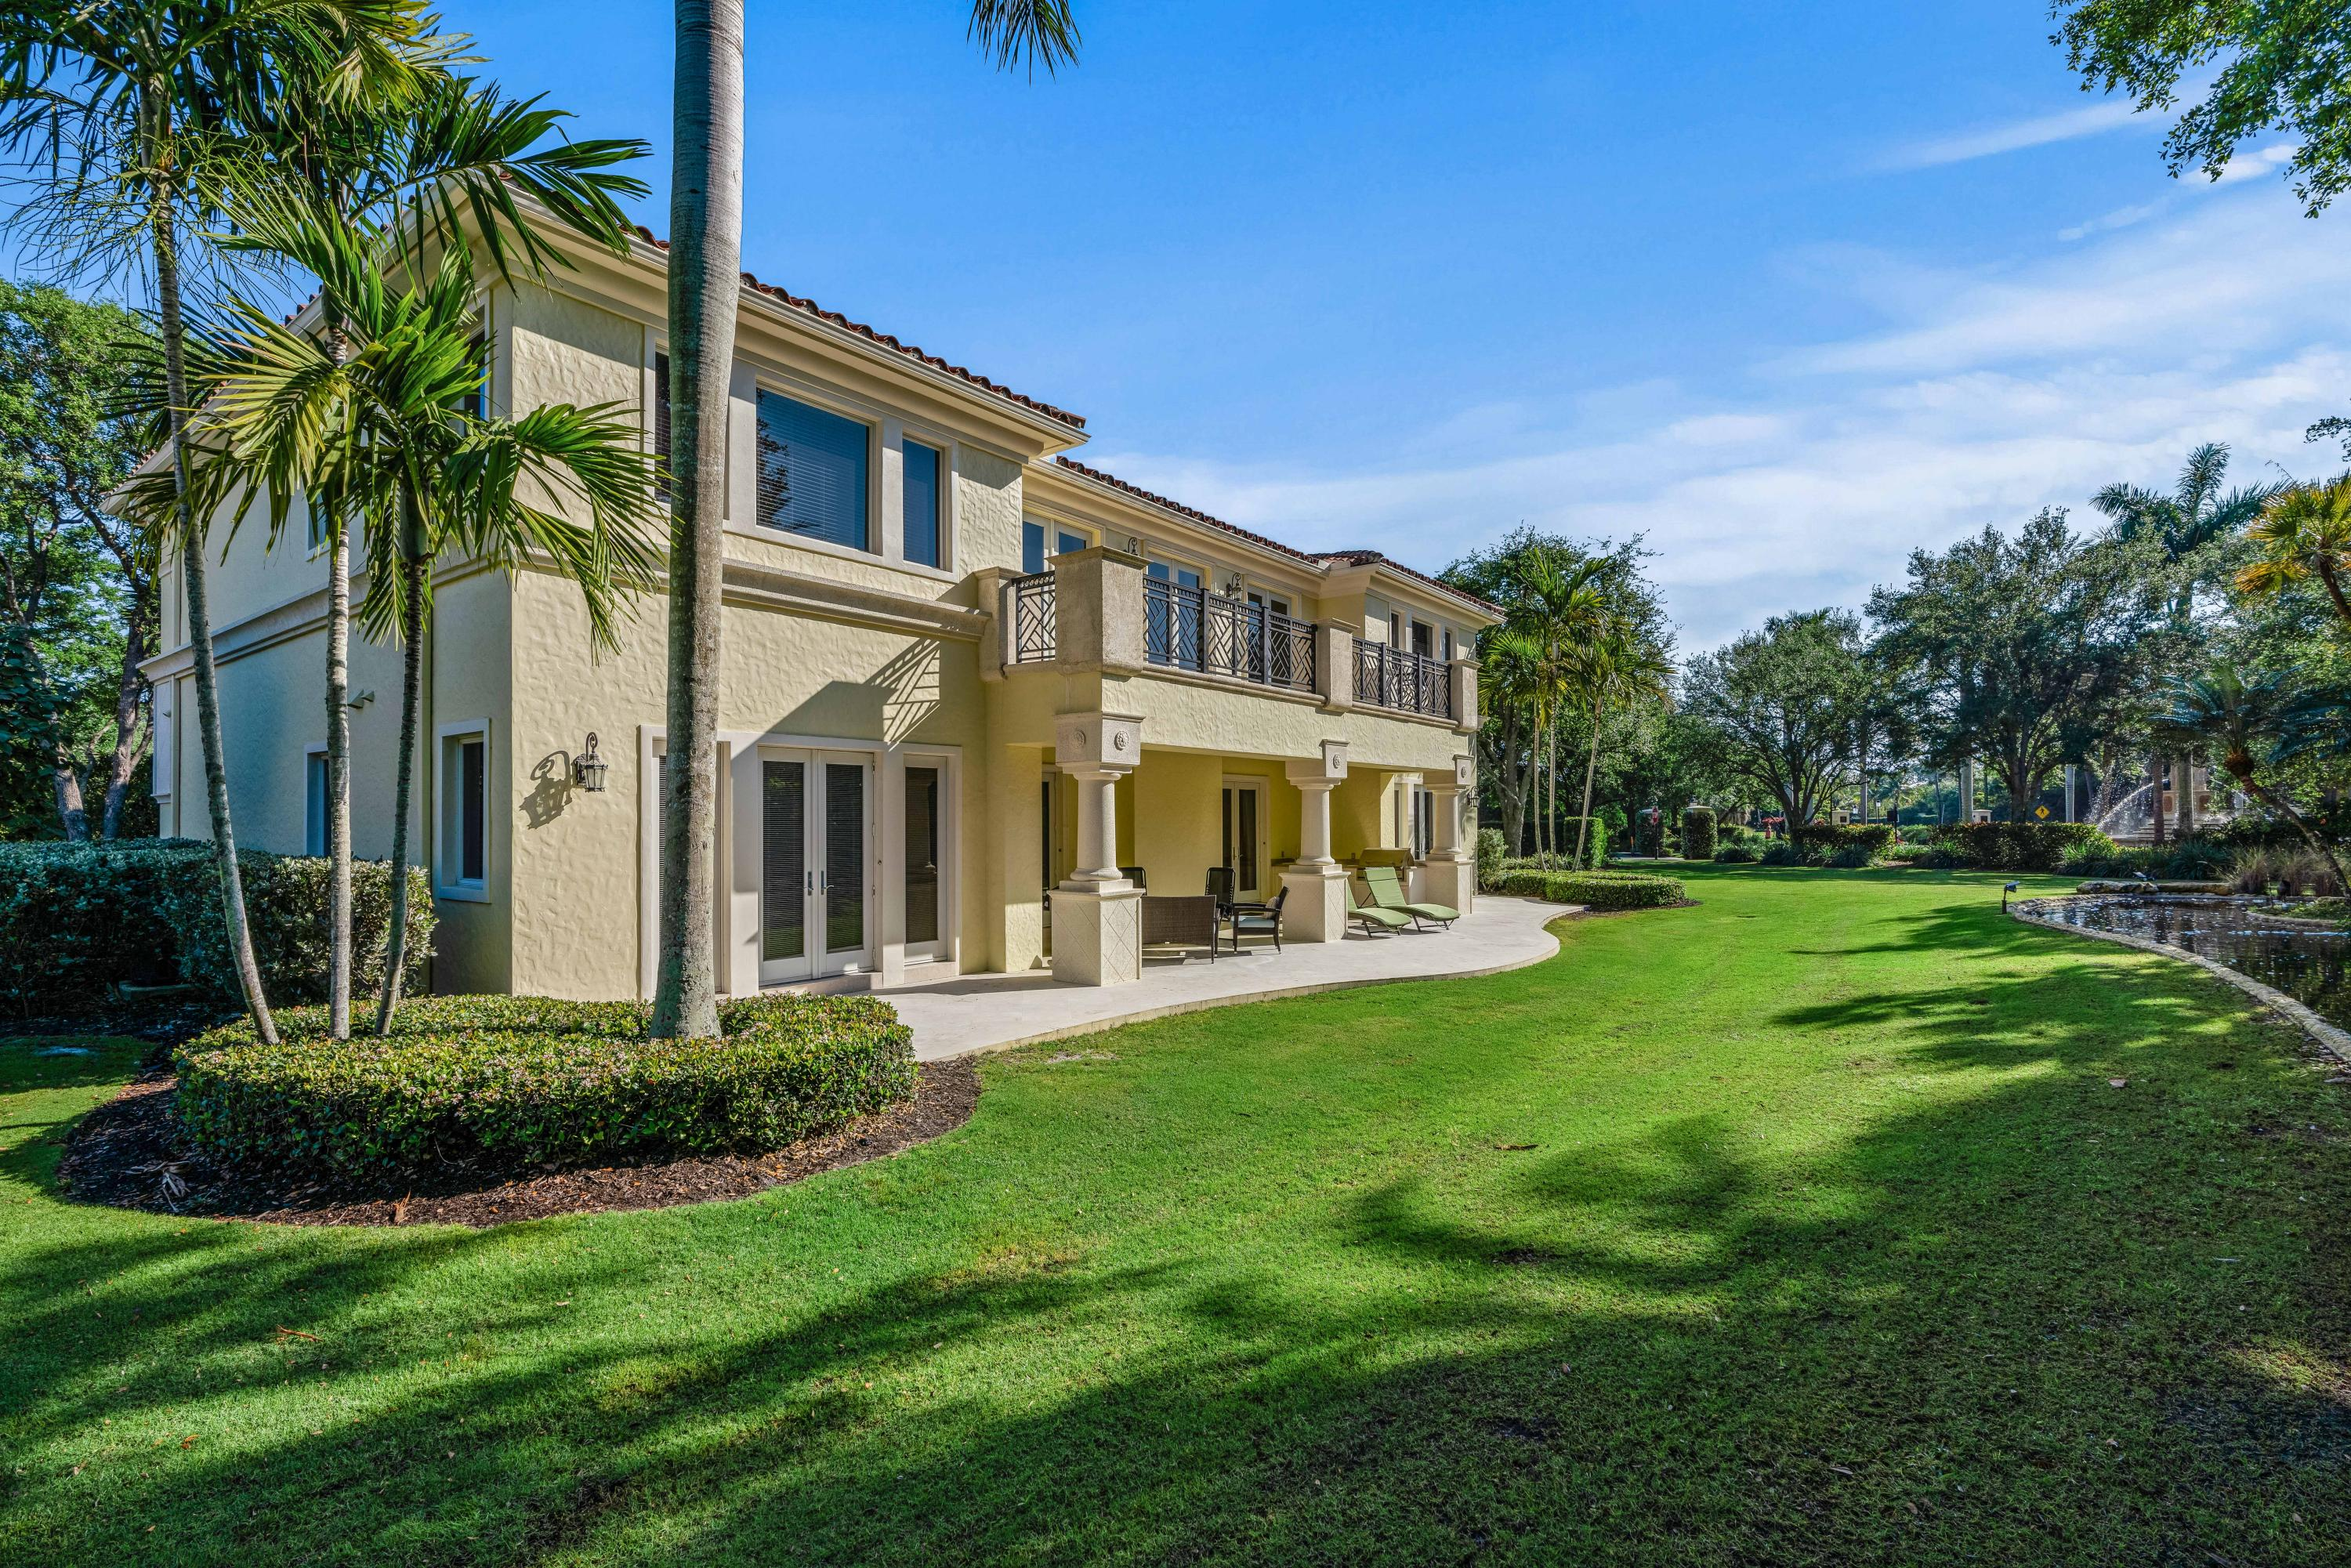 OLD PALM REALTY